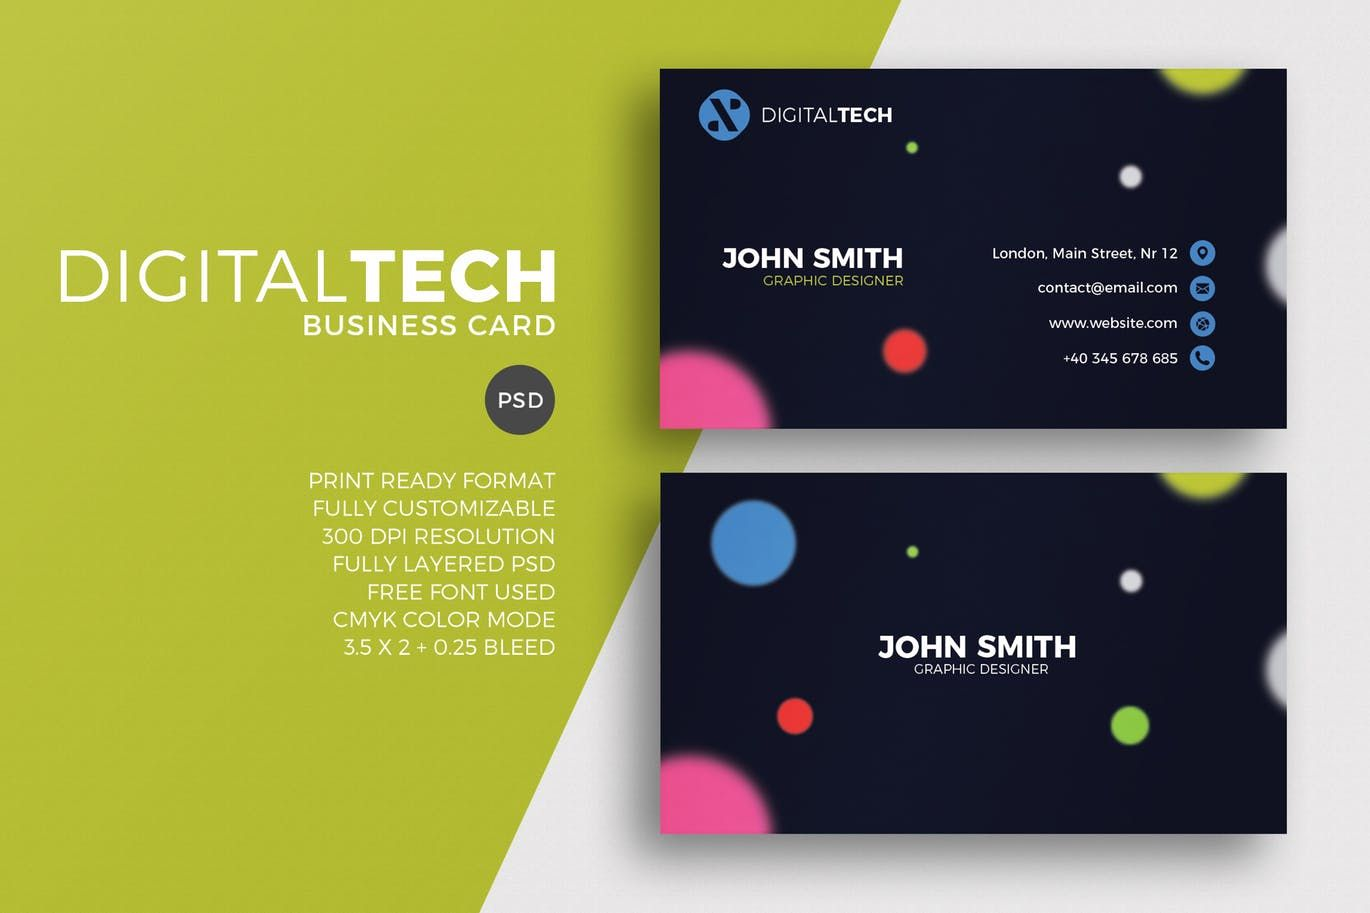 Digital tech business card template psd business card templates digital tech business card template psd accmission Images